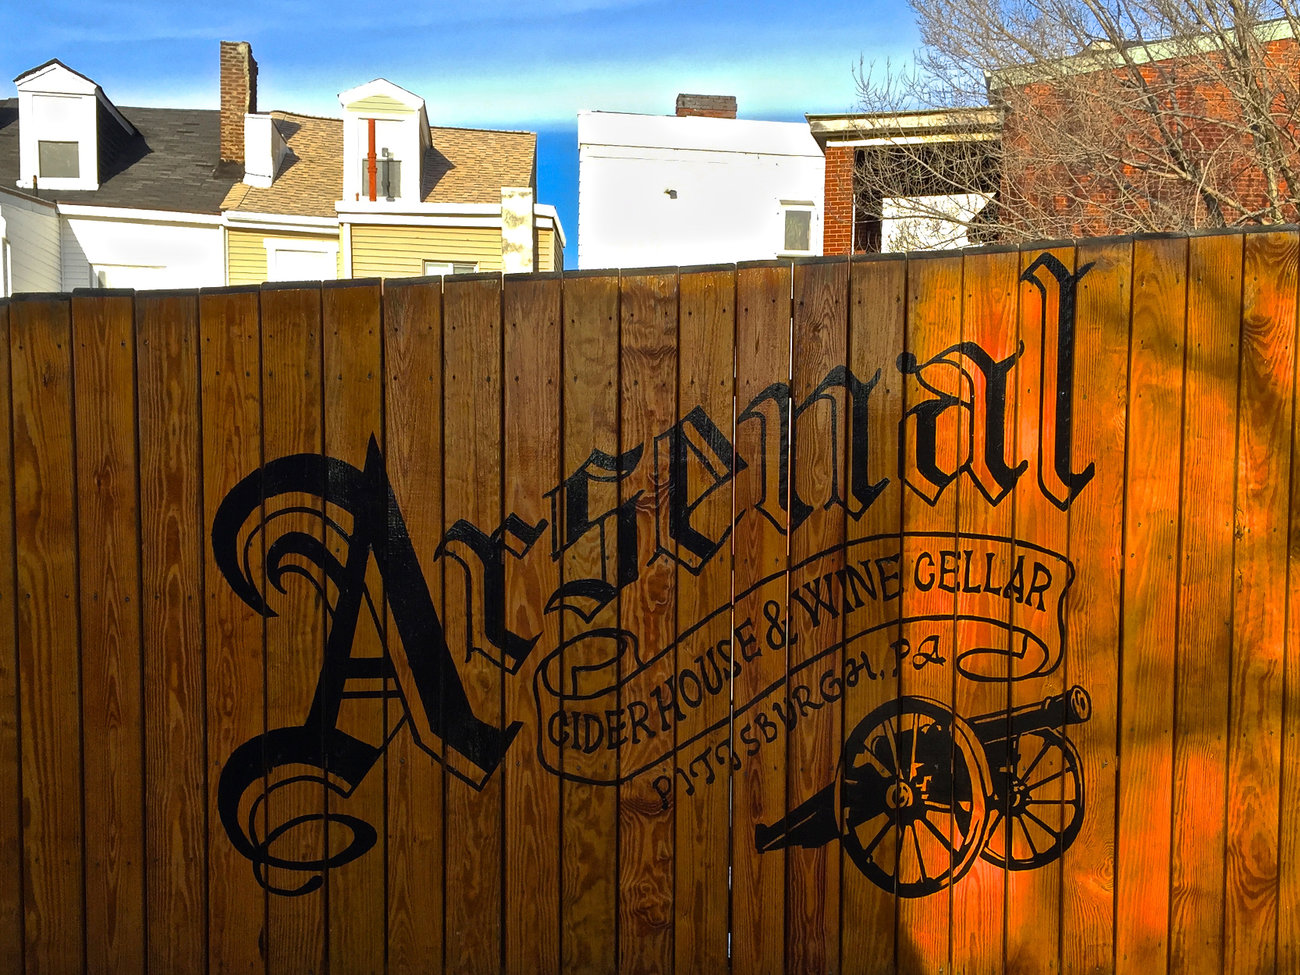 Arsenal Cider House Bar in Pittsburgh